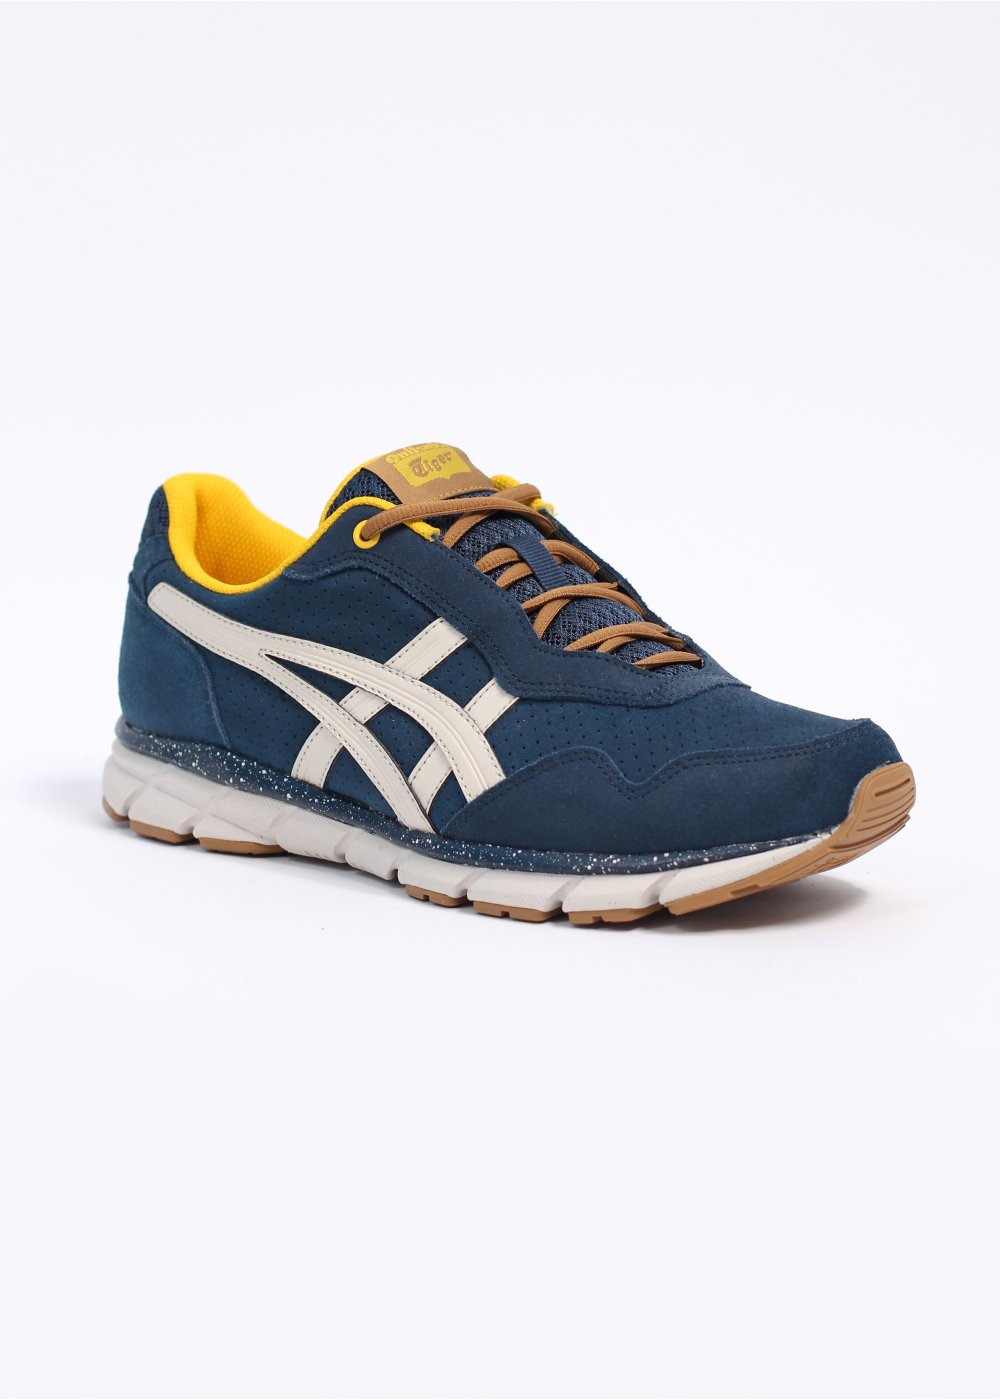 asics onitsuka tiger harandia trainers bering sea. Black Bedroom Furniture Sets. Home Design Ideas